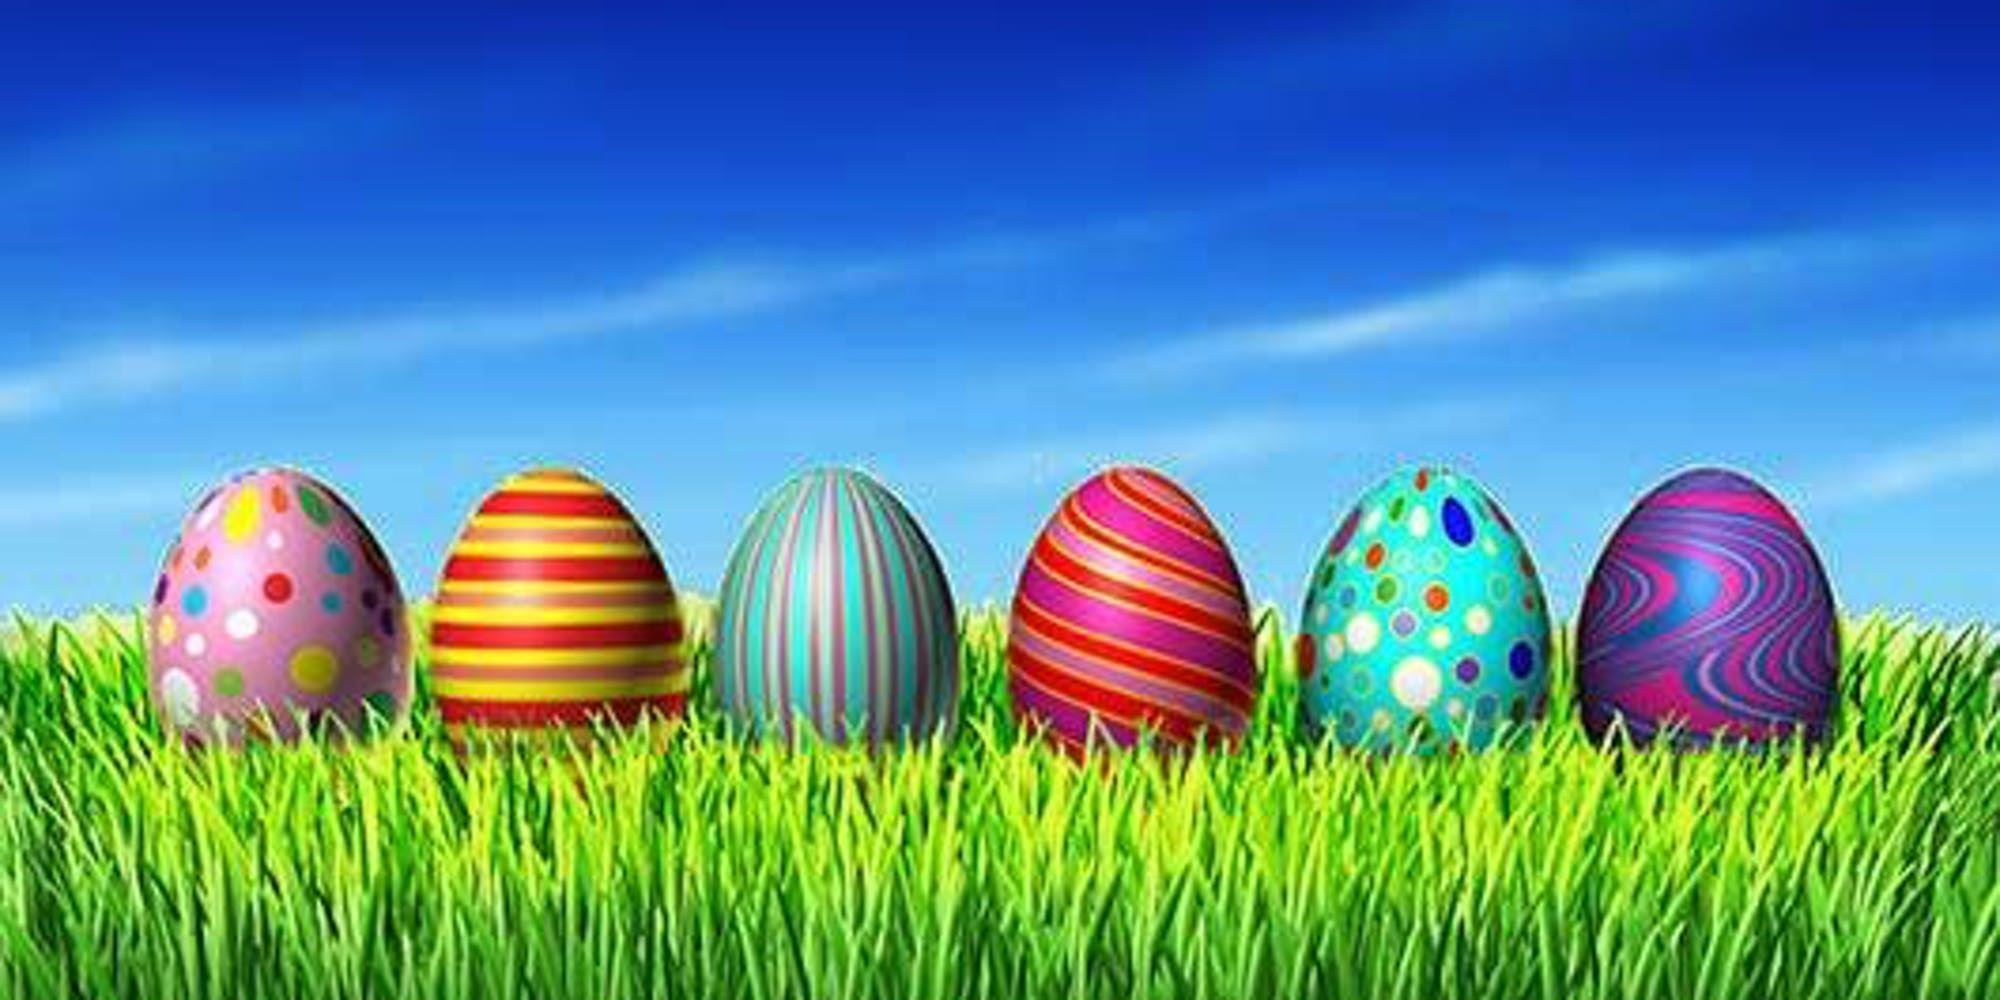 4th Annual Accessible Special Needs Easter Egg Hunt 2019